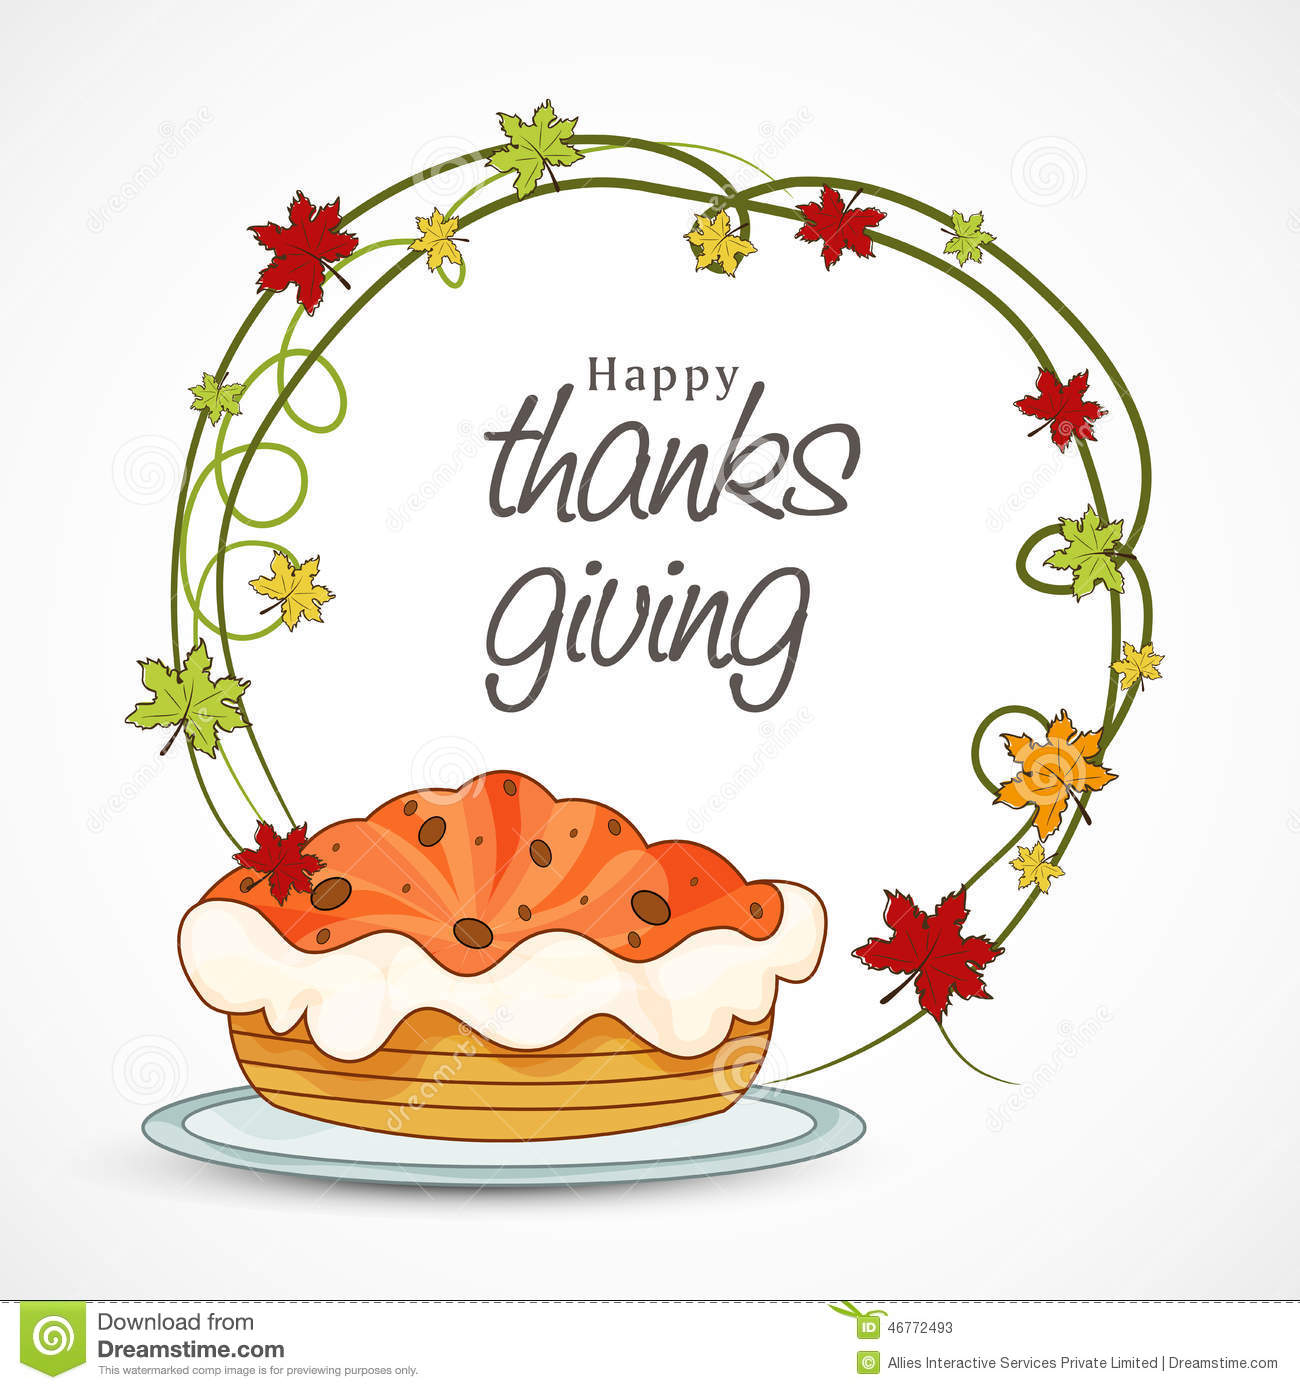 thanksgiving day celebration essay An important tradition in the united states is the celebration of thanksgiving this event occurs on the last thursday of november thanksgiving essay thanksgiving or turkey day thanksgiving day citations mla citation thanksgiving.